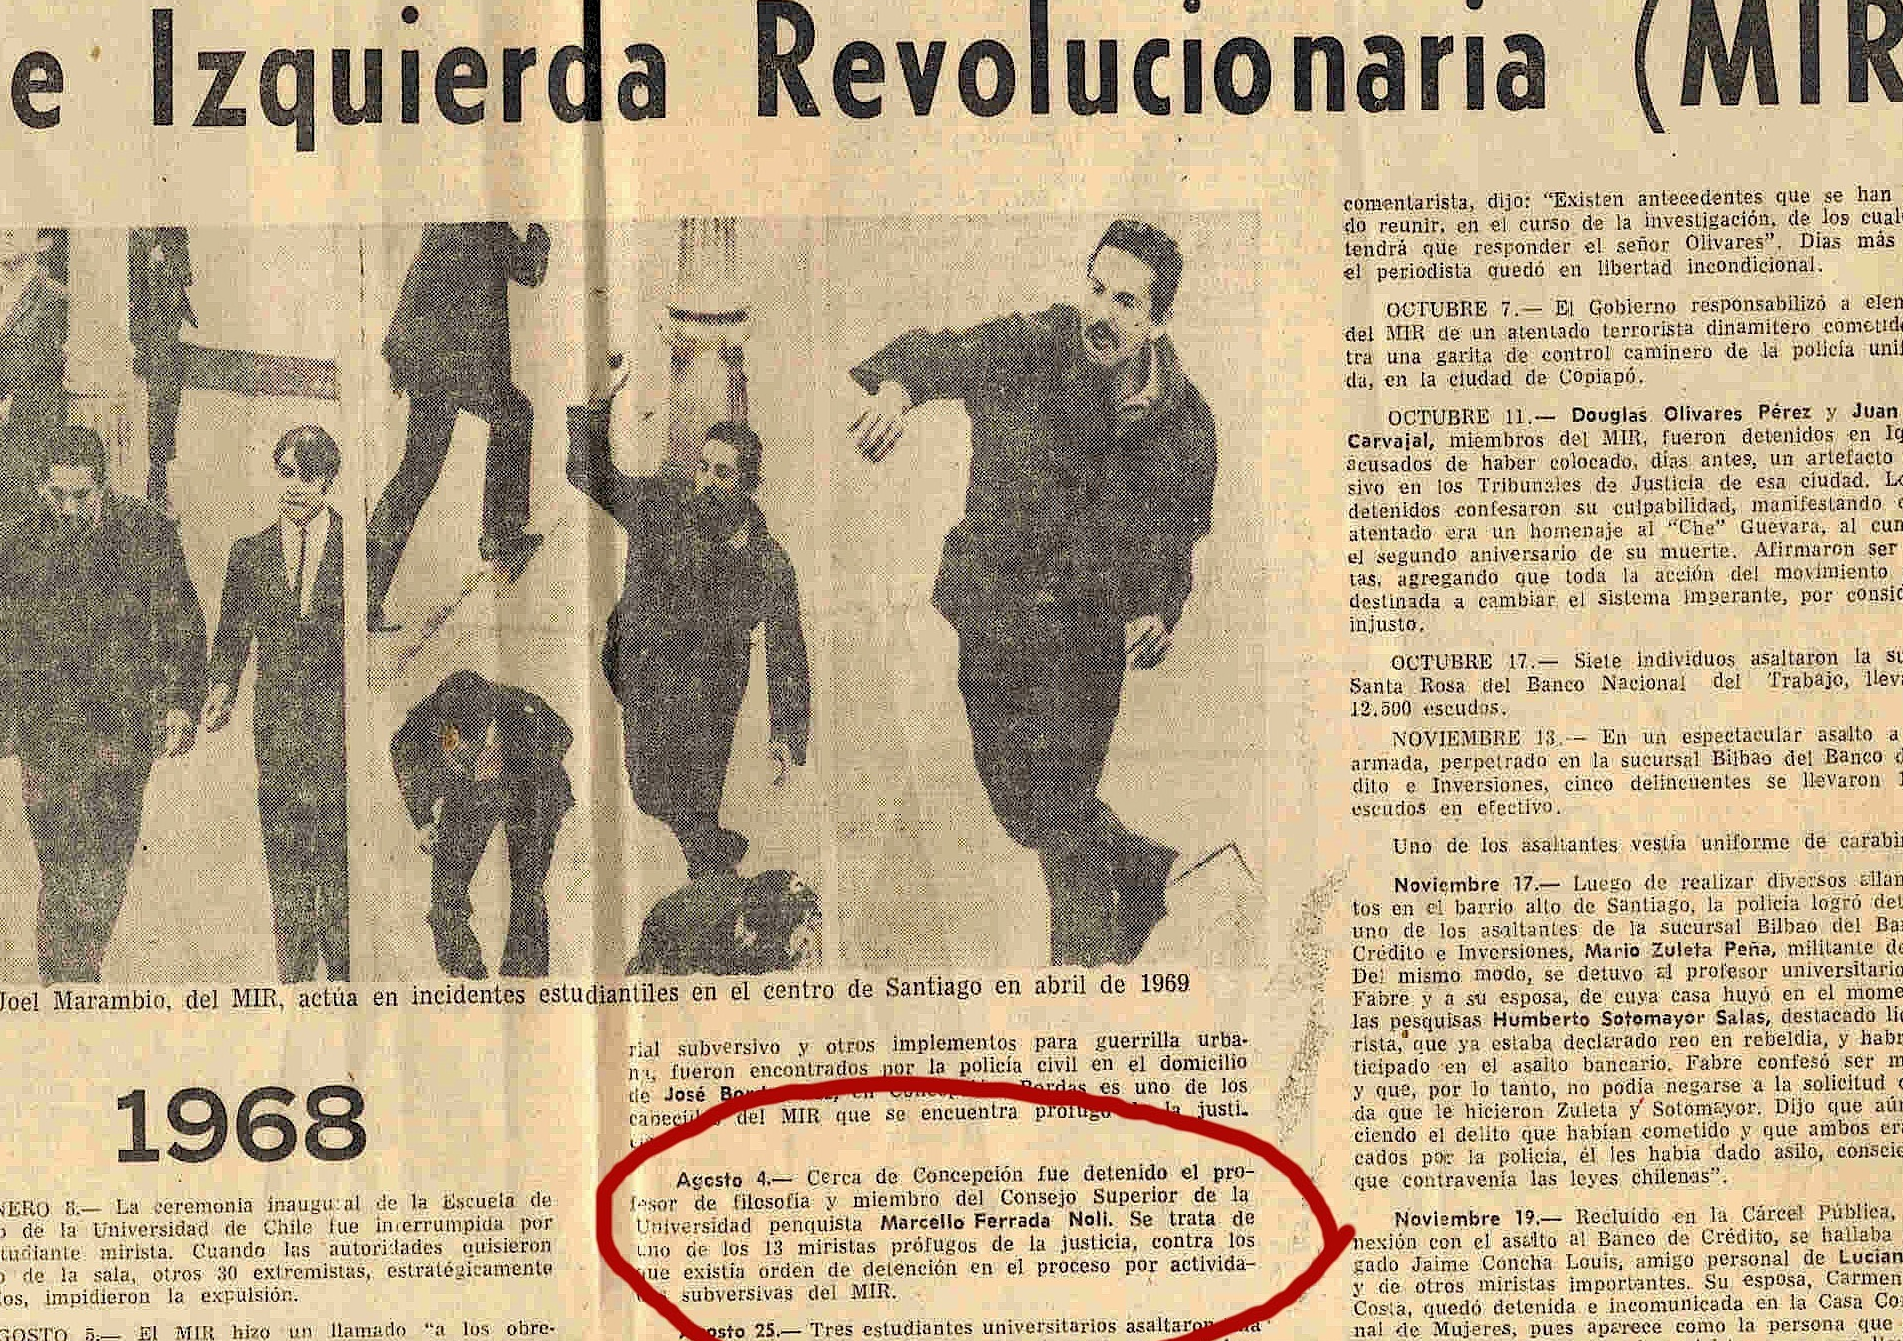 4 agosto 1969 El Mercurio close-up